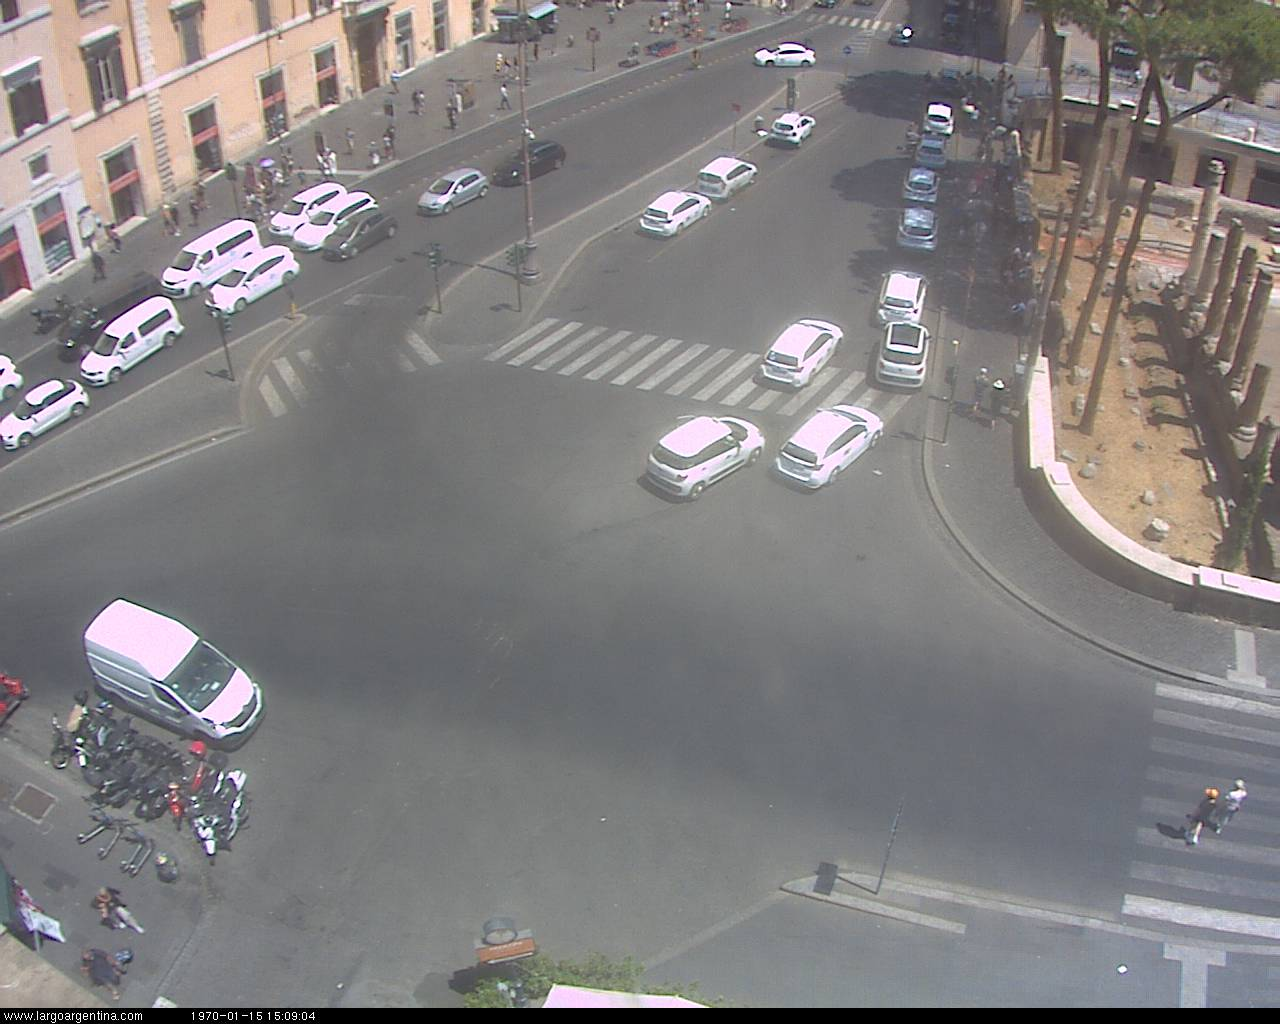 Webcam in Verona